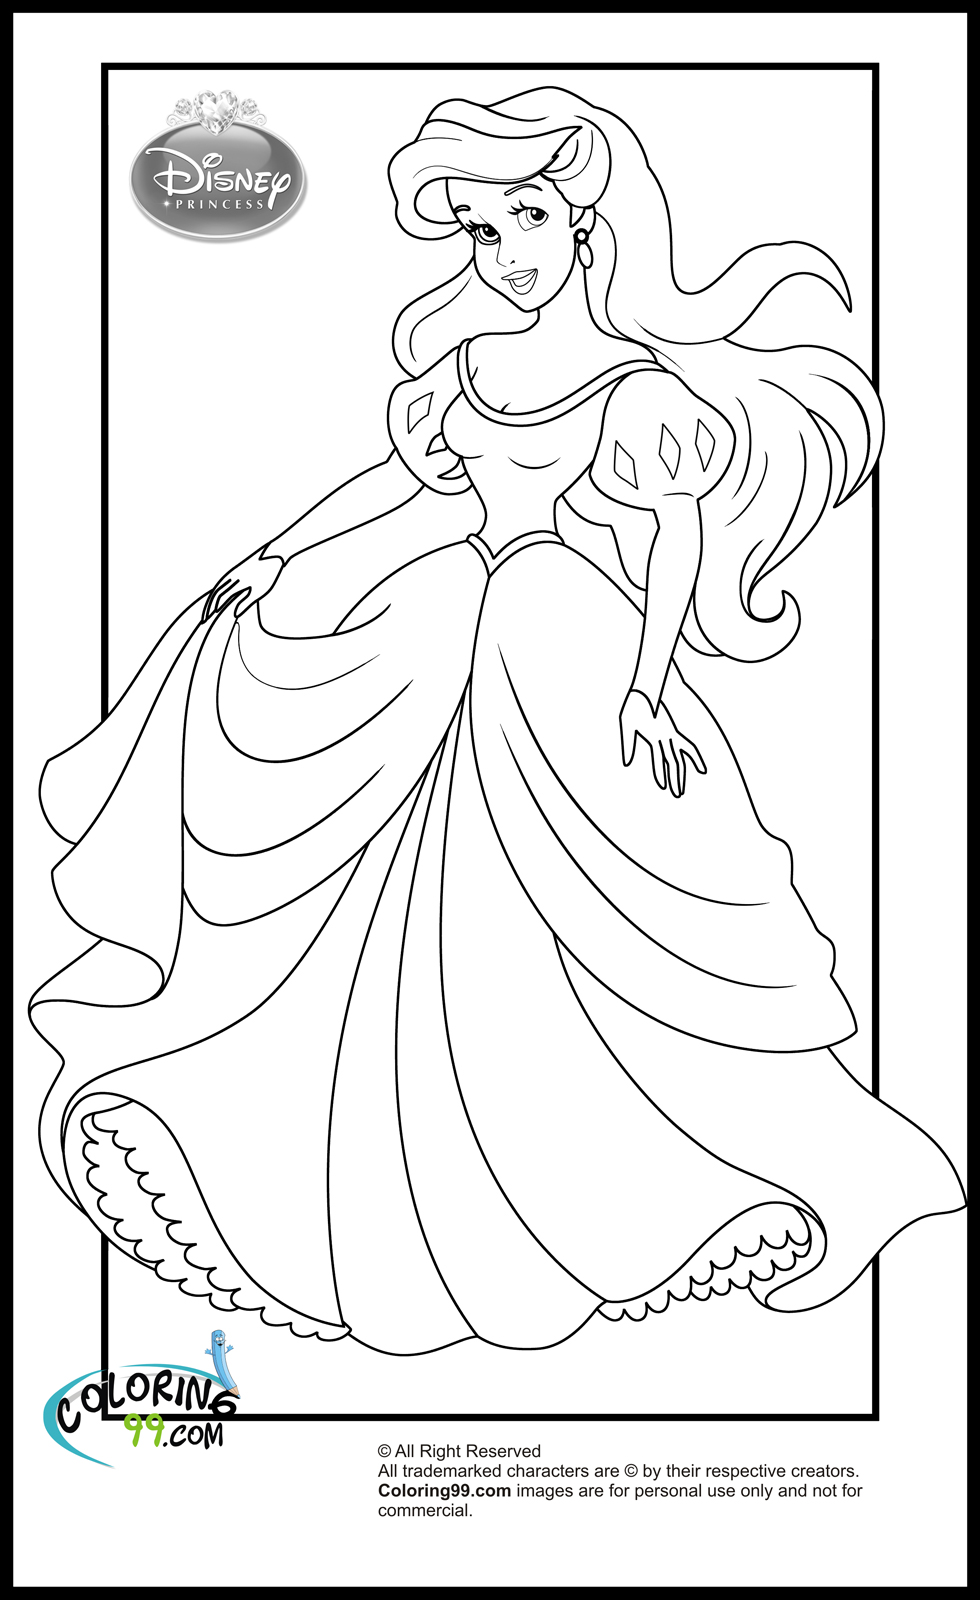 coloring pages of disney princesses - photo#8